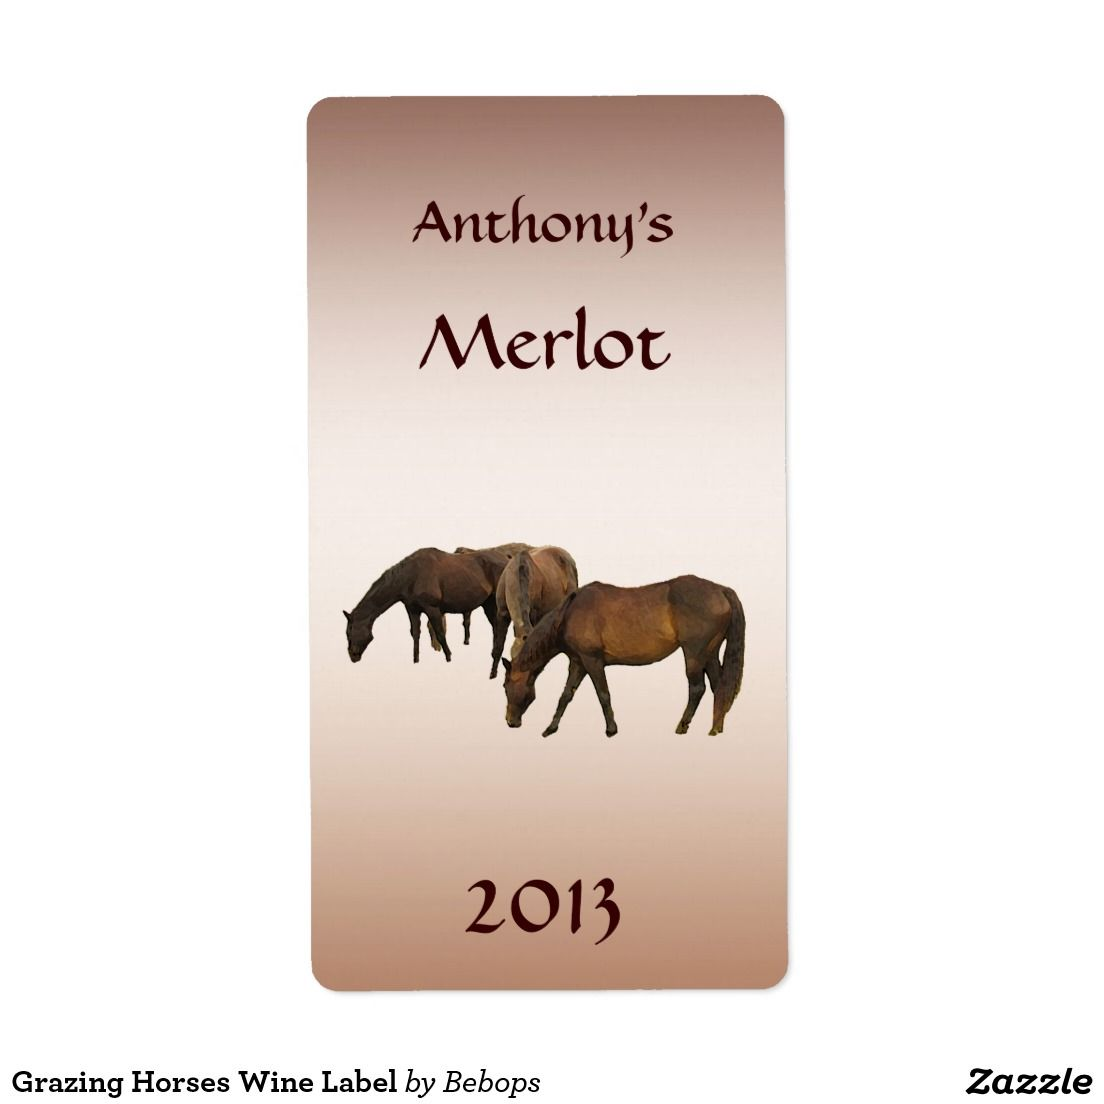 Grazing Horses Wine Label Shipping Label